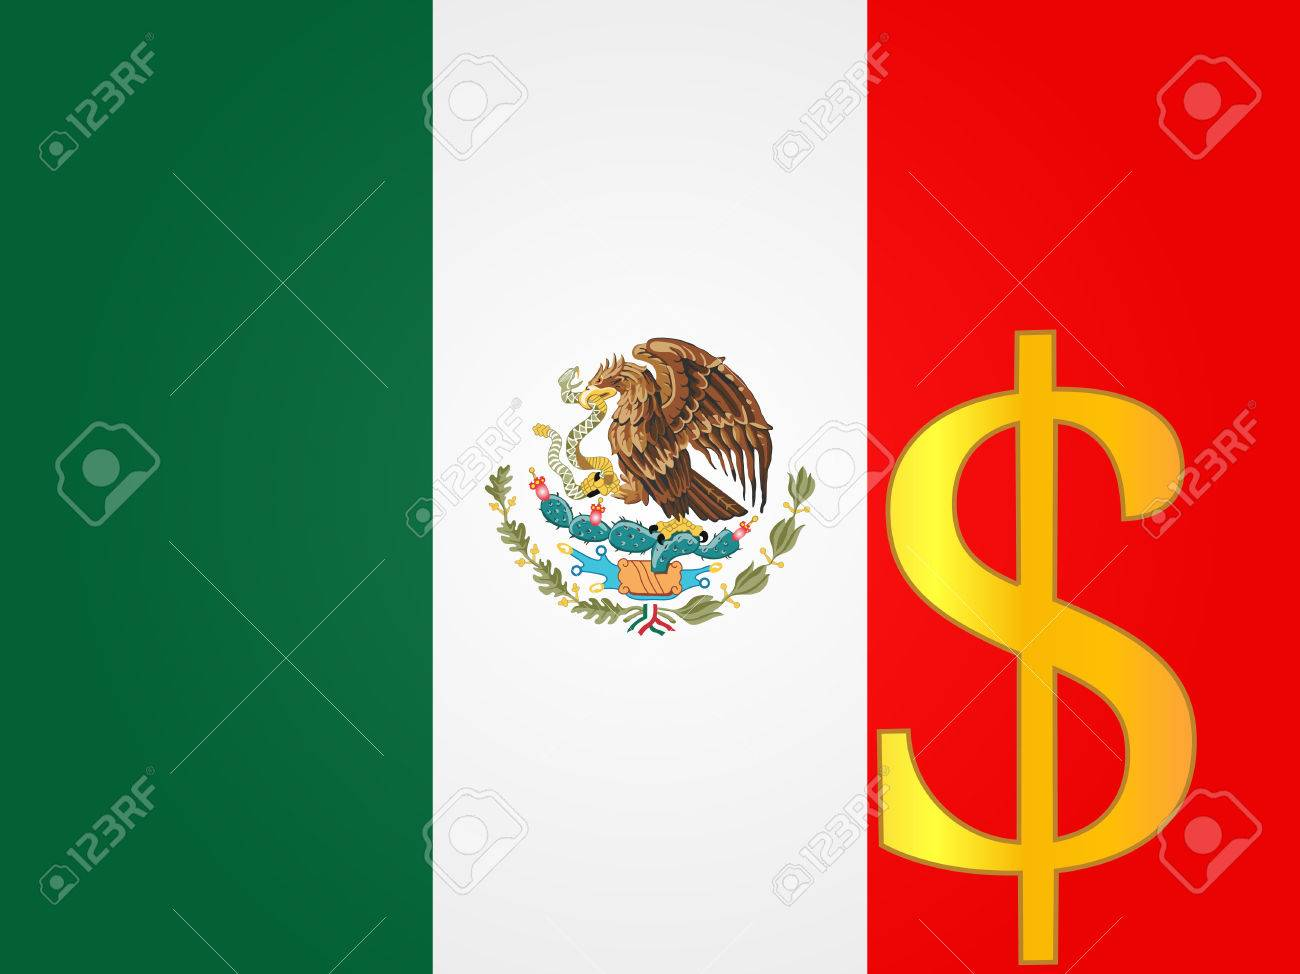 Peso Currency Sign Over The Mexican Flag Royalty Free Cliparts